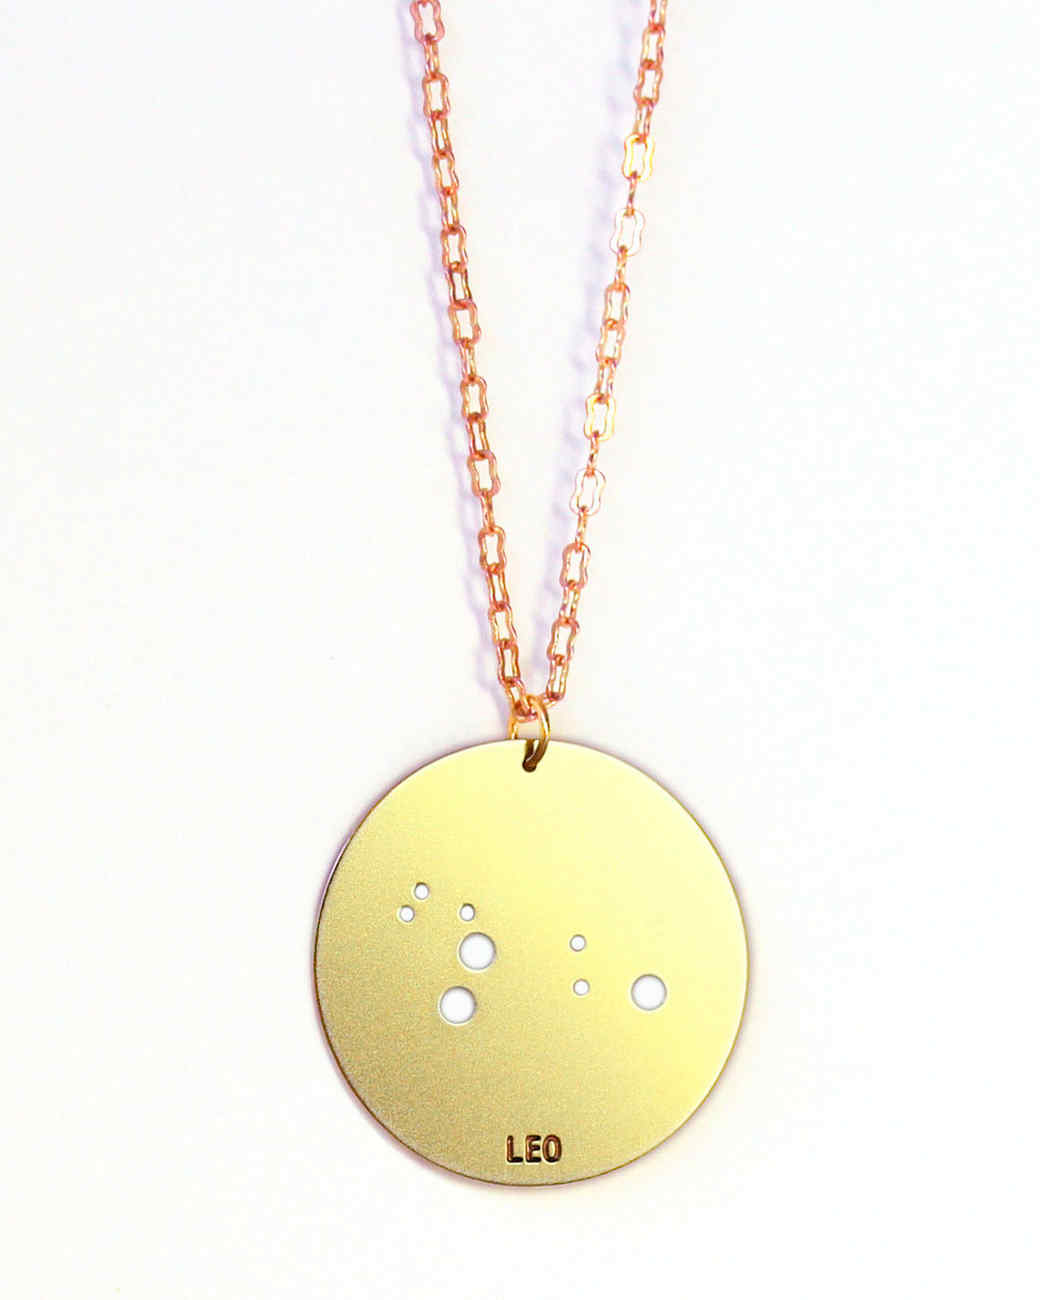 julienolanjewelry-constellation-pendant-necklace-zodiac-0915.jpg